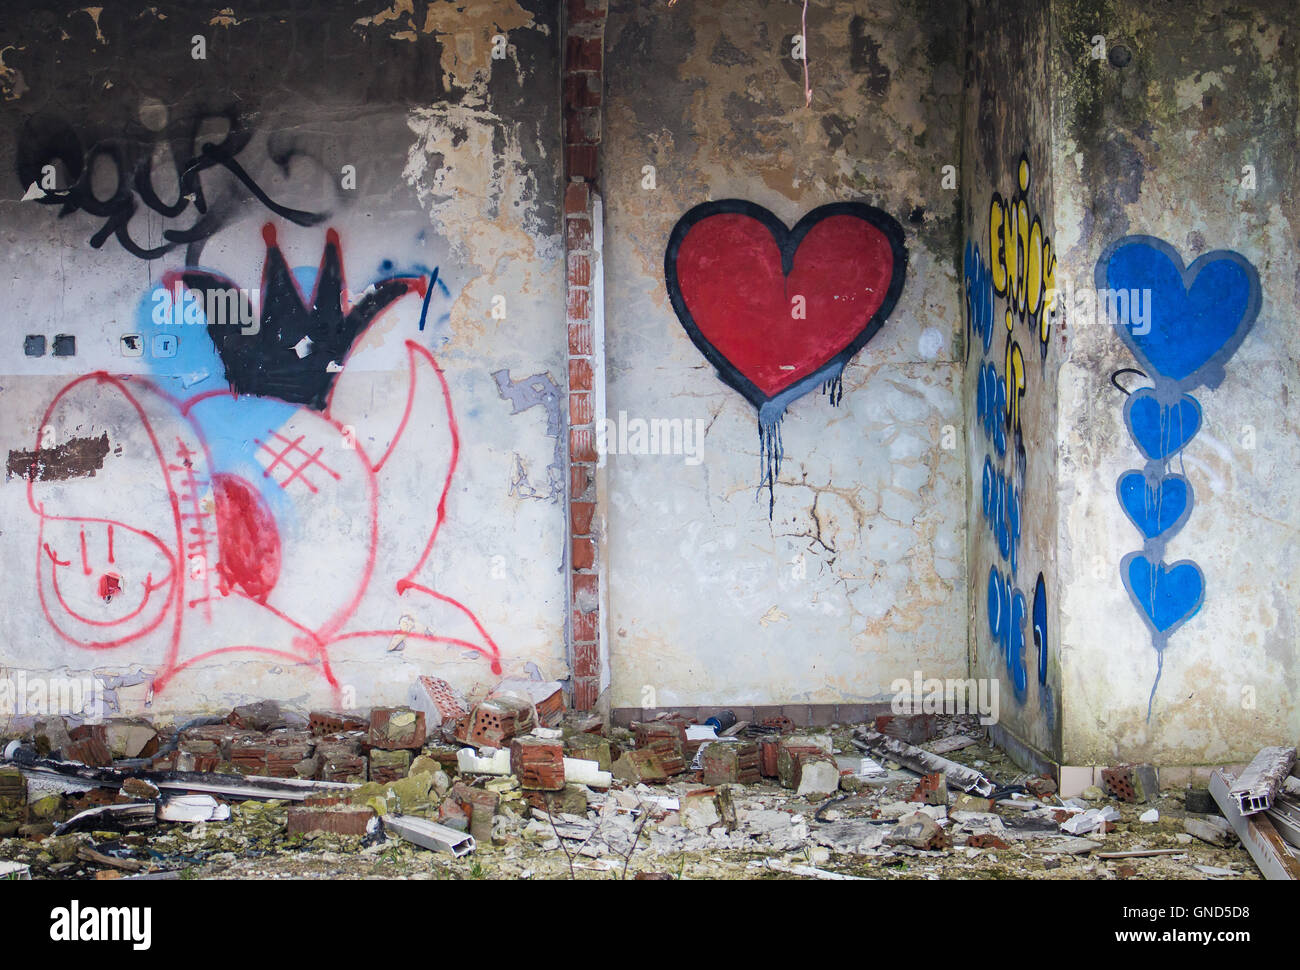 Red And Blue Hearts Graffiti Painted On The Wall In